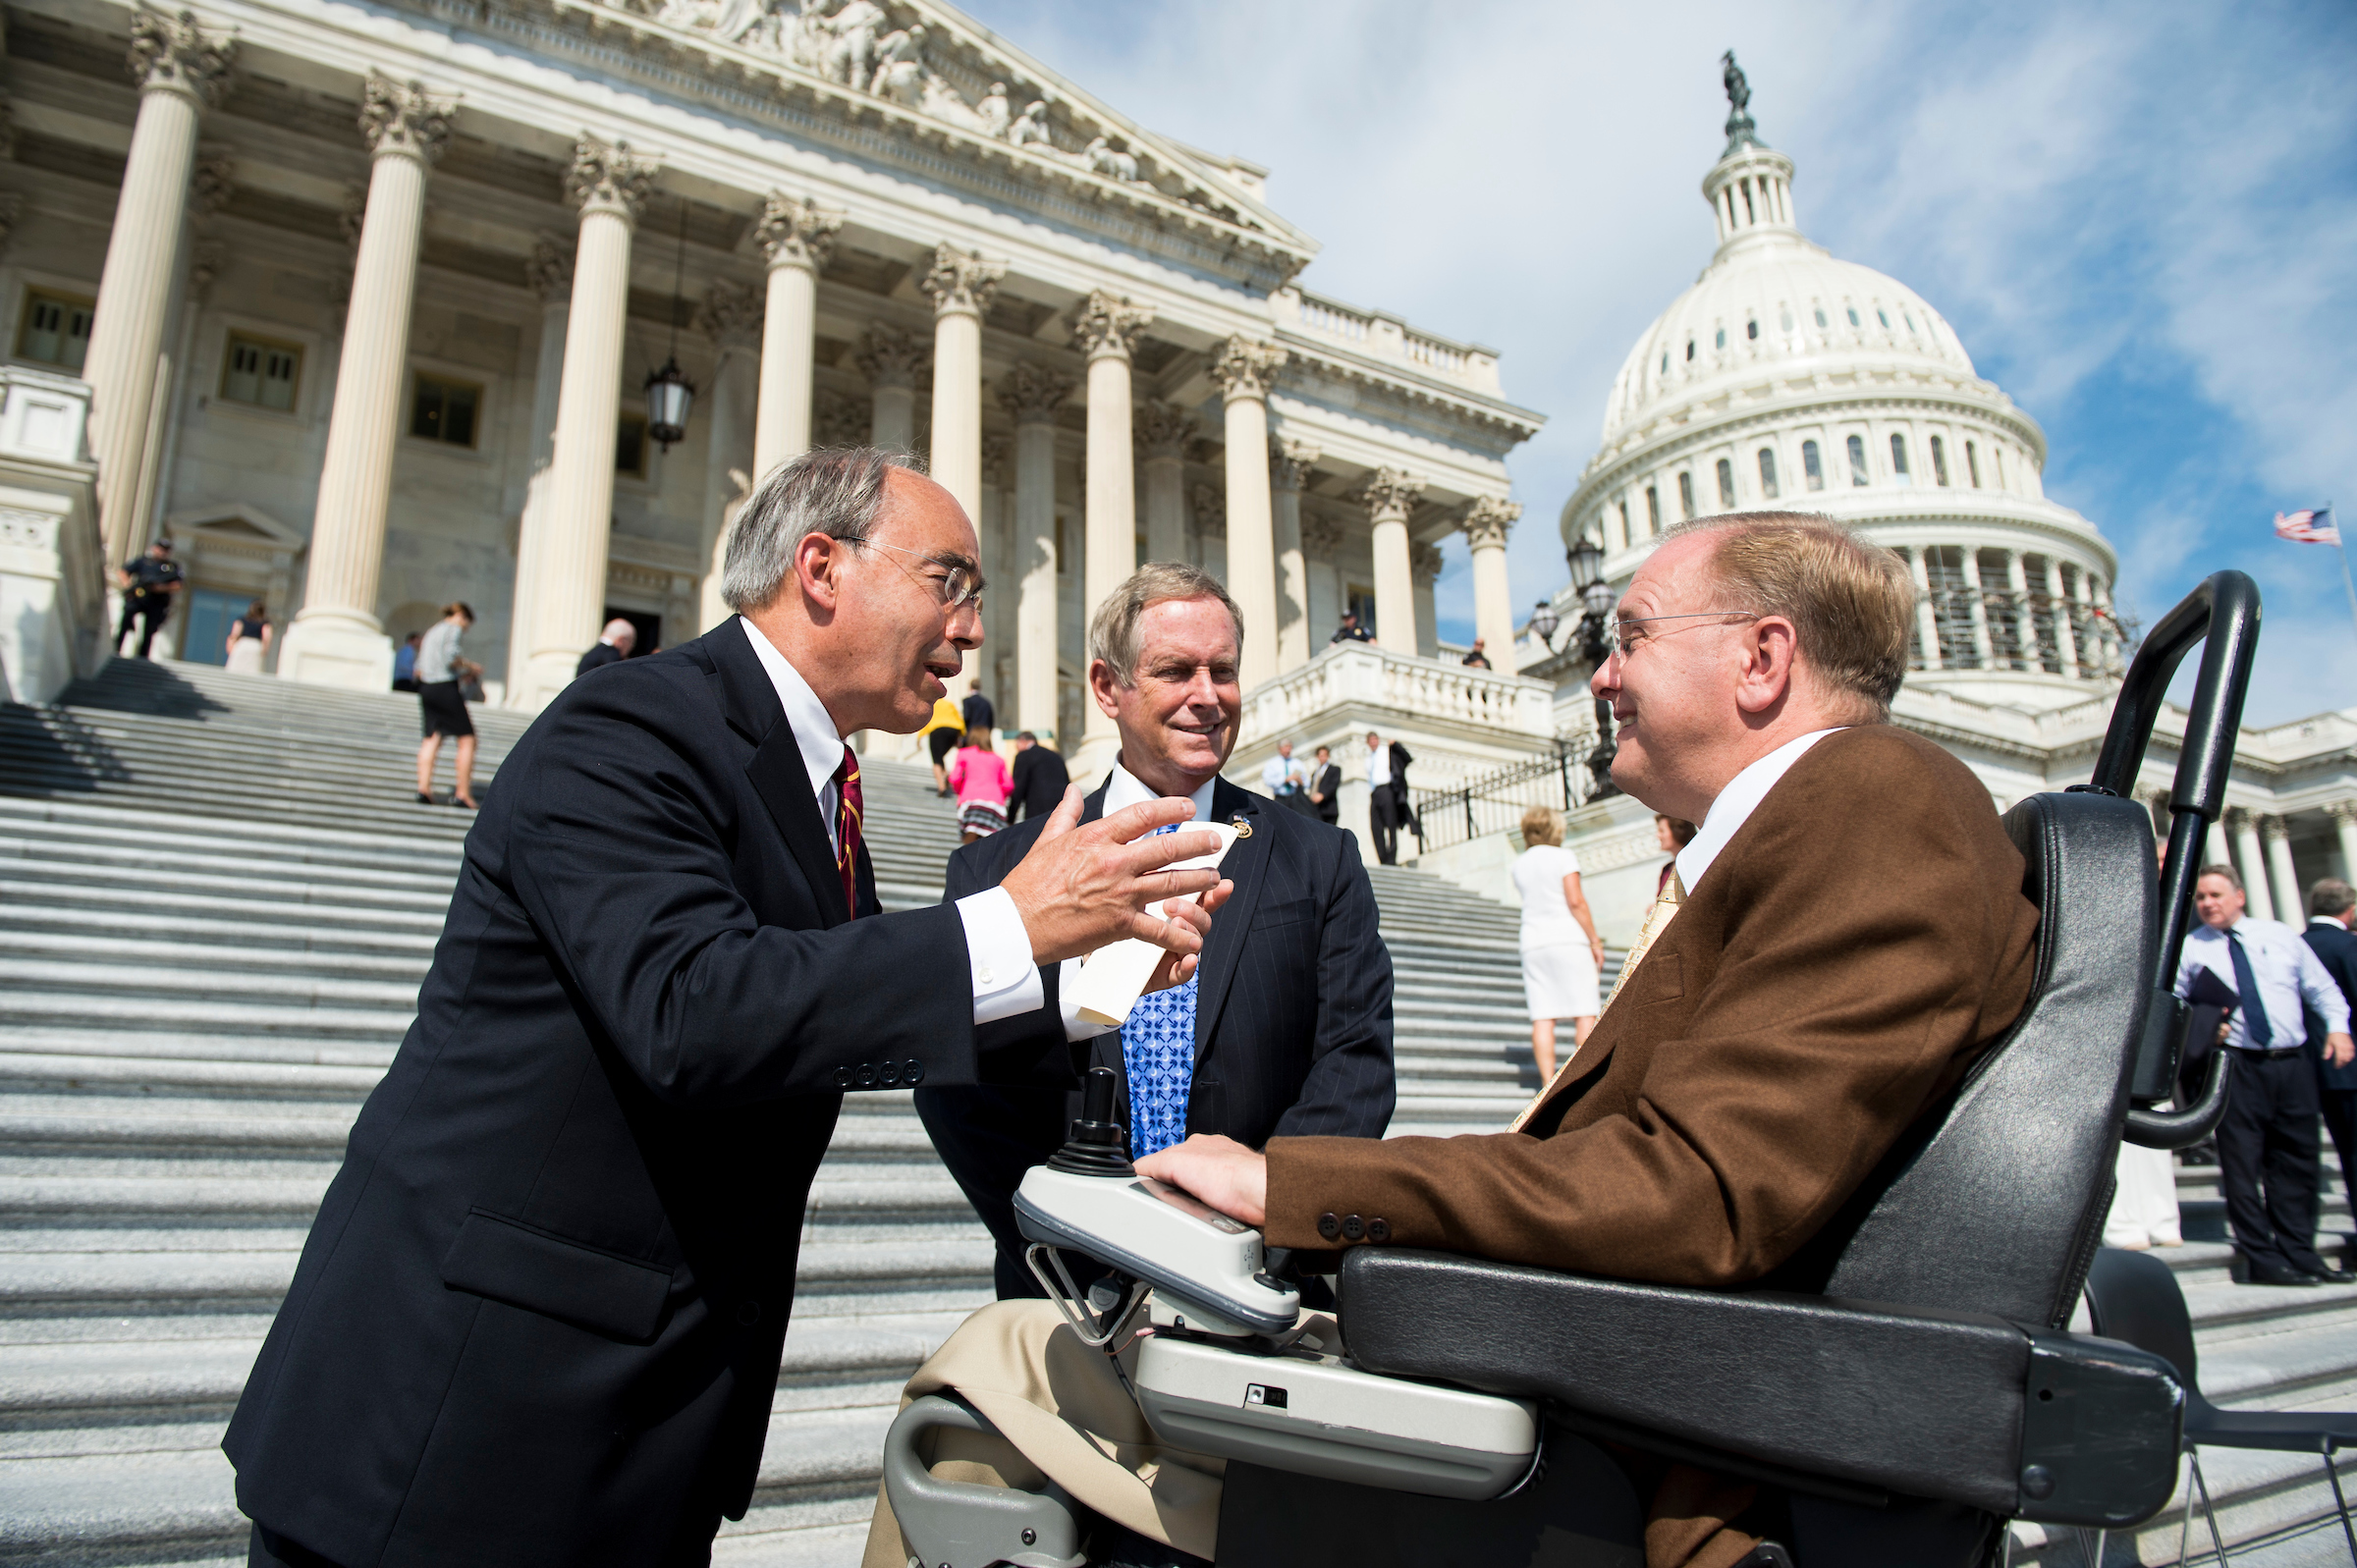 Maine Rep. Bruce Poliquin, left, talks with other congressmen on the House steps in Washington on Friday. (Bill Clark/CQ Roll Call)